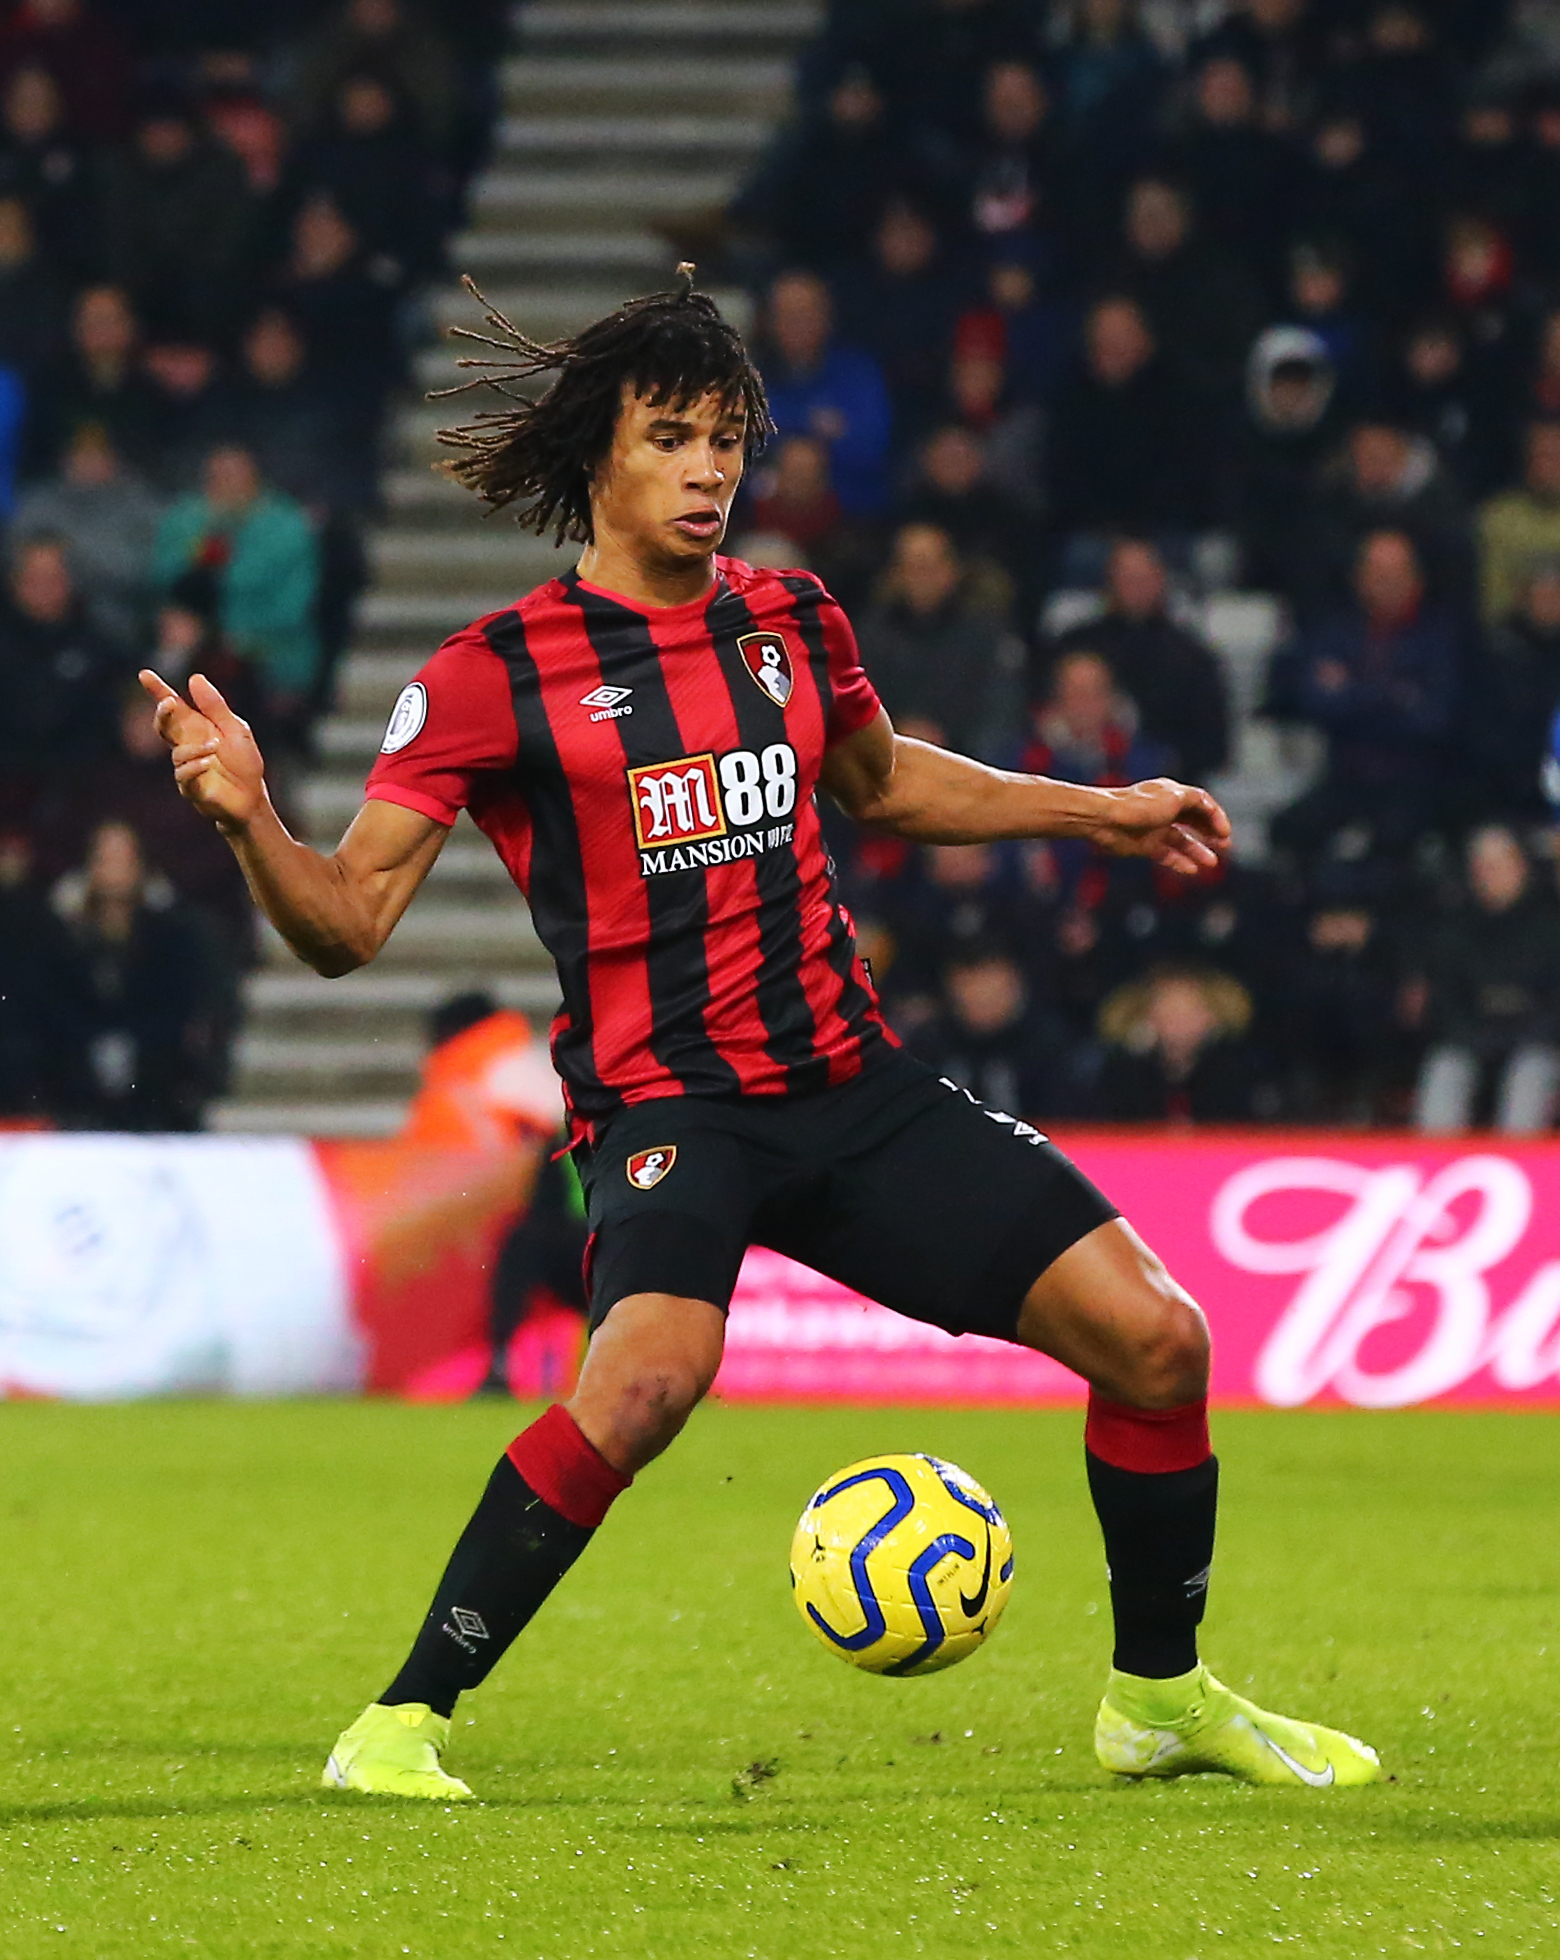 Manchester City announce signing of Nathan Ake from Bournemouth